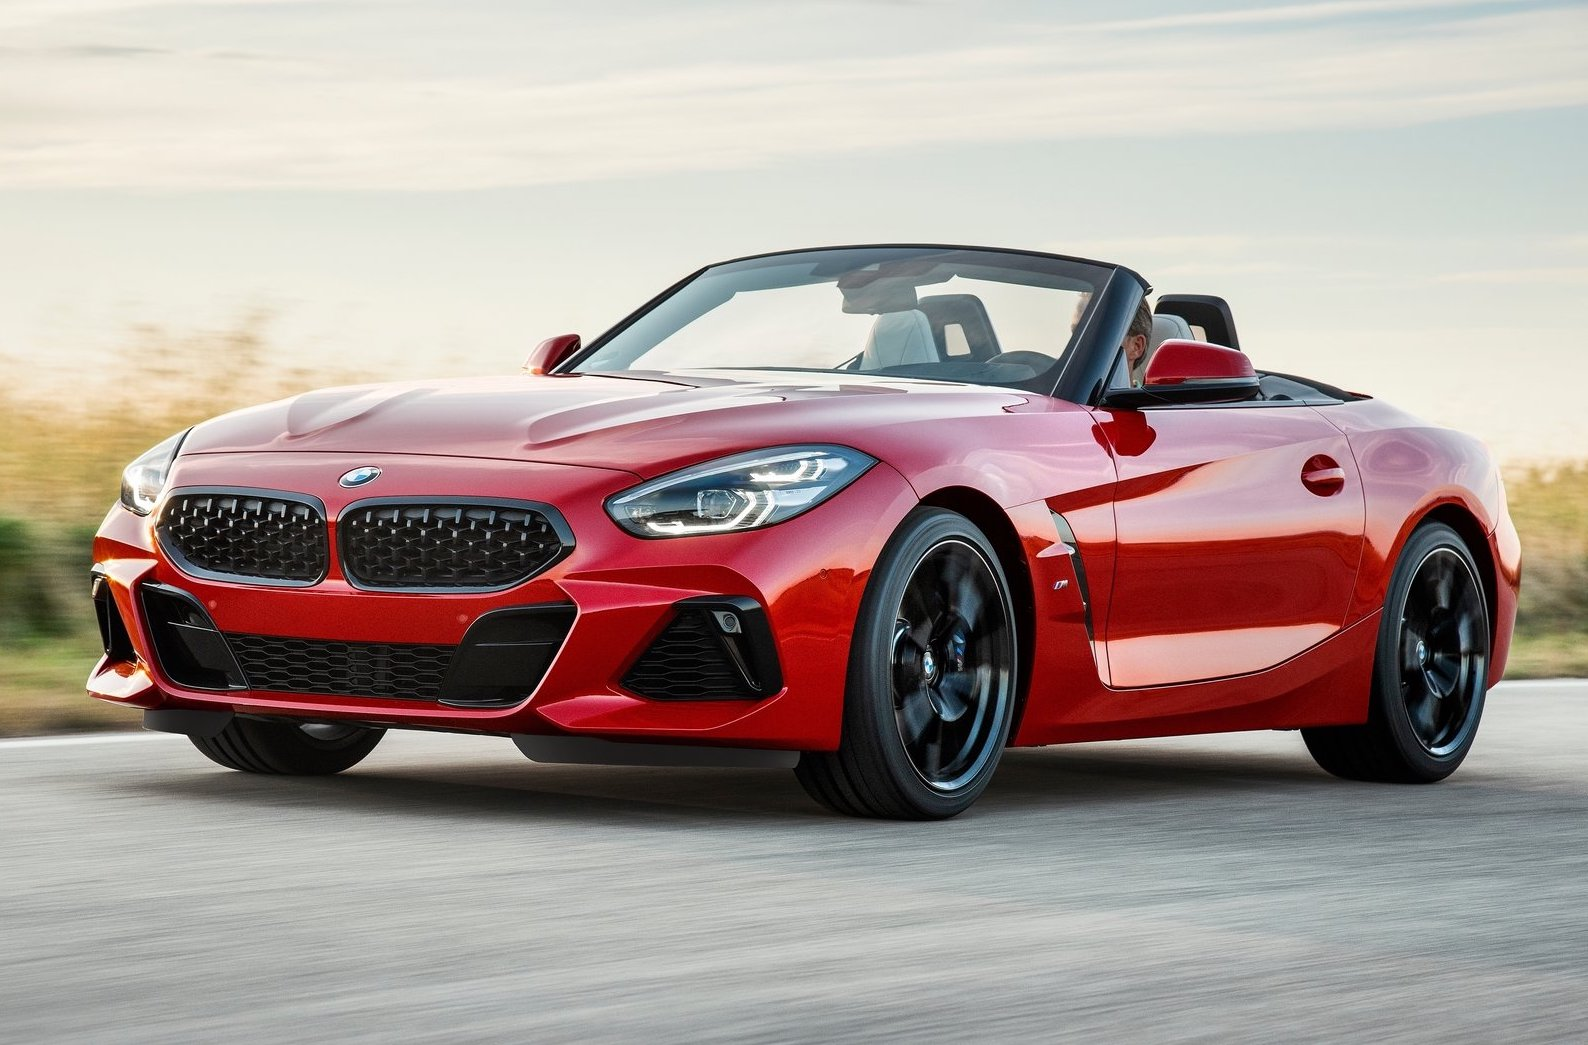 2019 Bmw Z4 M40i Officially Revealed Looks Hot